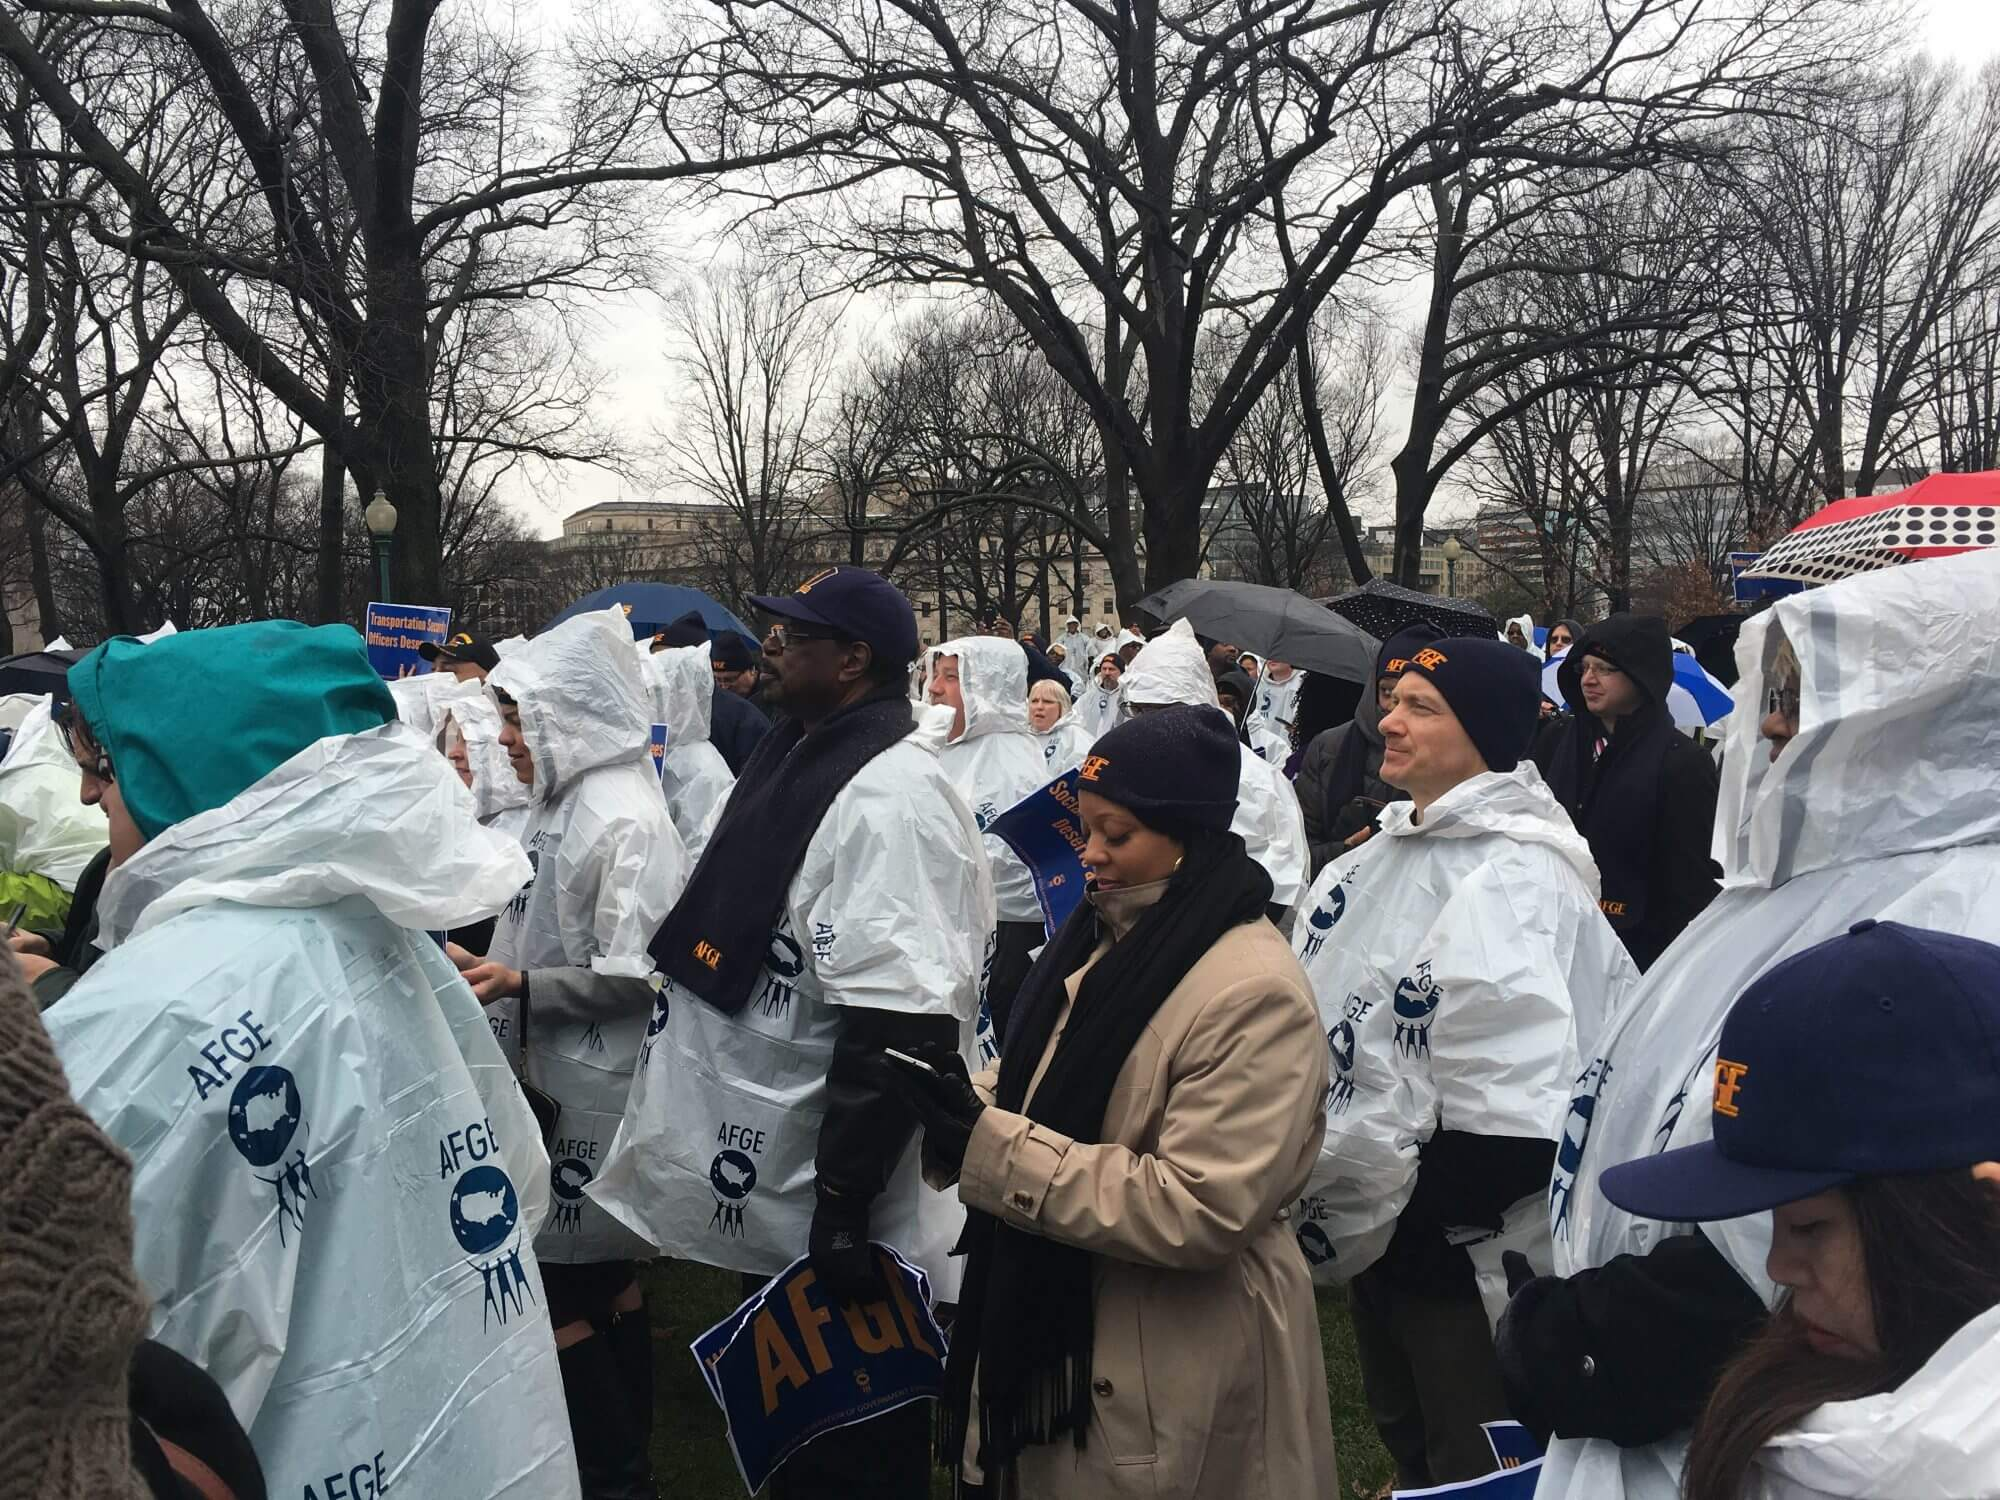 Federal employees rally on Capitol Hill, demand higher wages